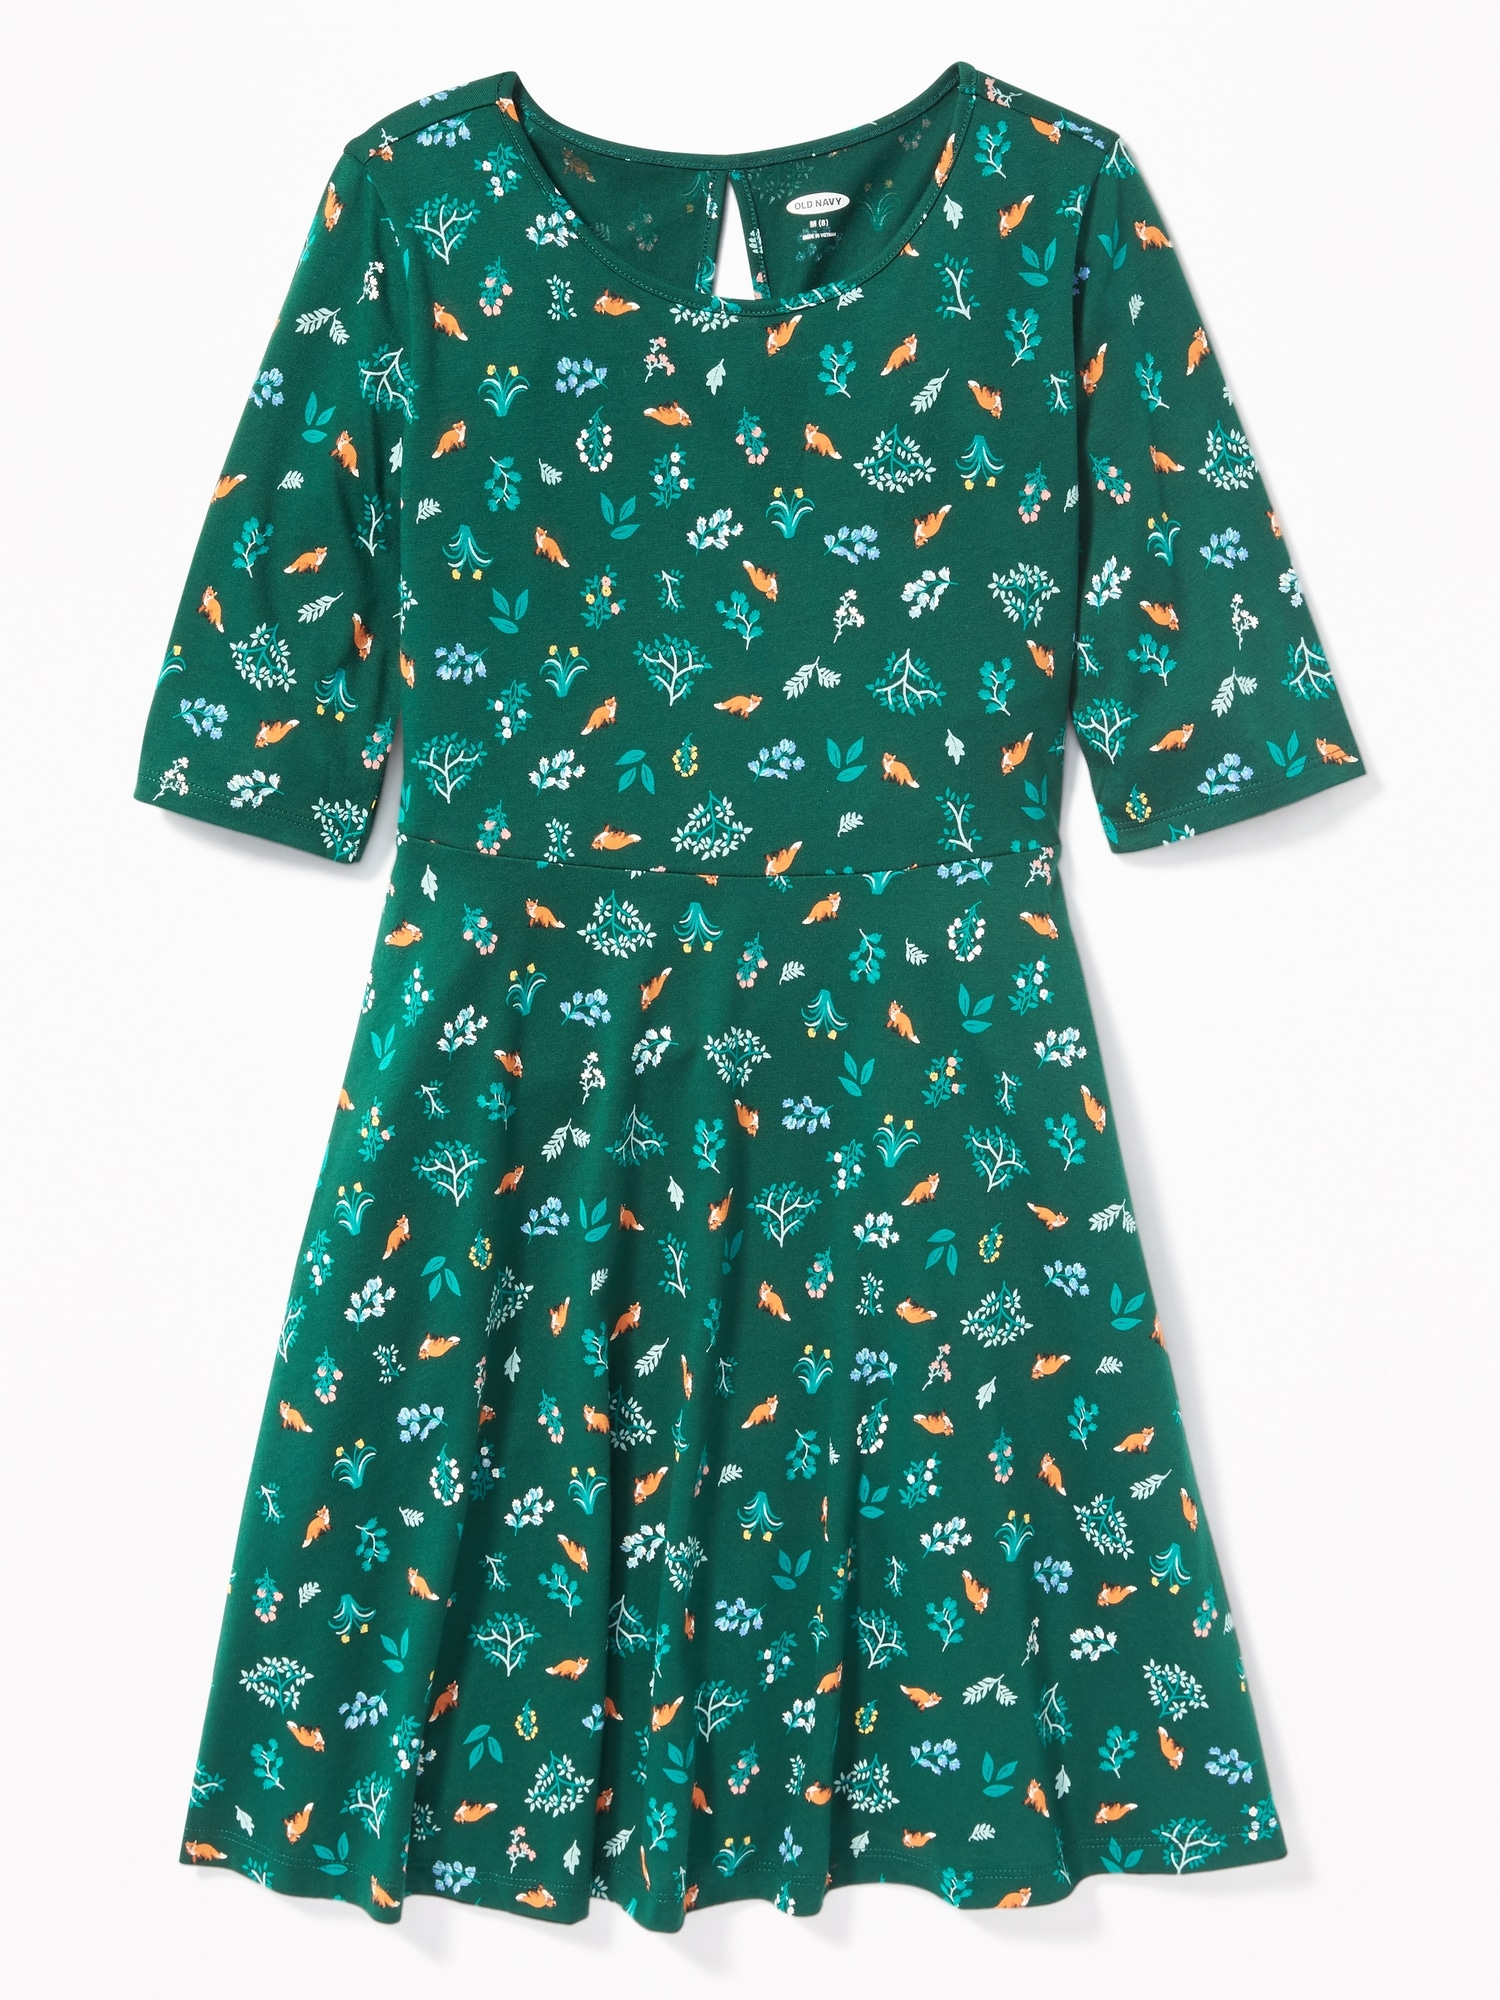 0628c034871c3 Patterned Jersey Fit   Flare Dress for Girls